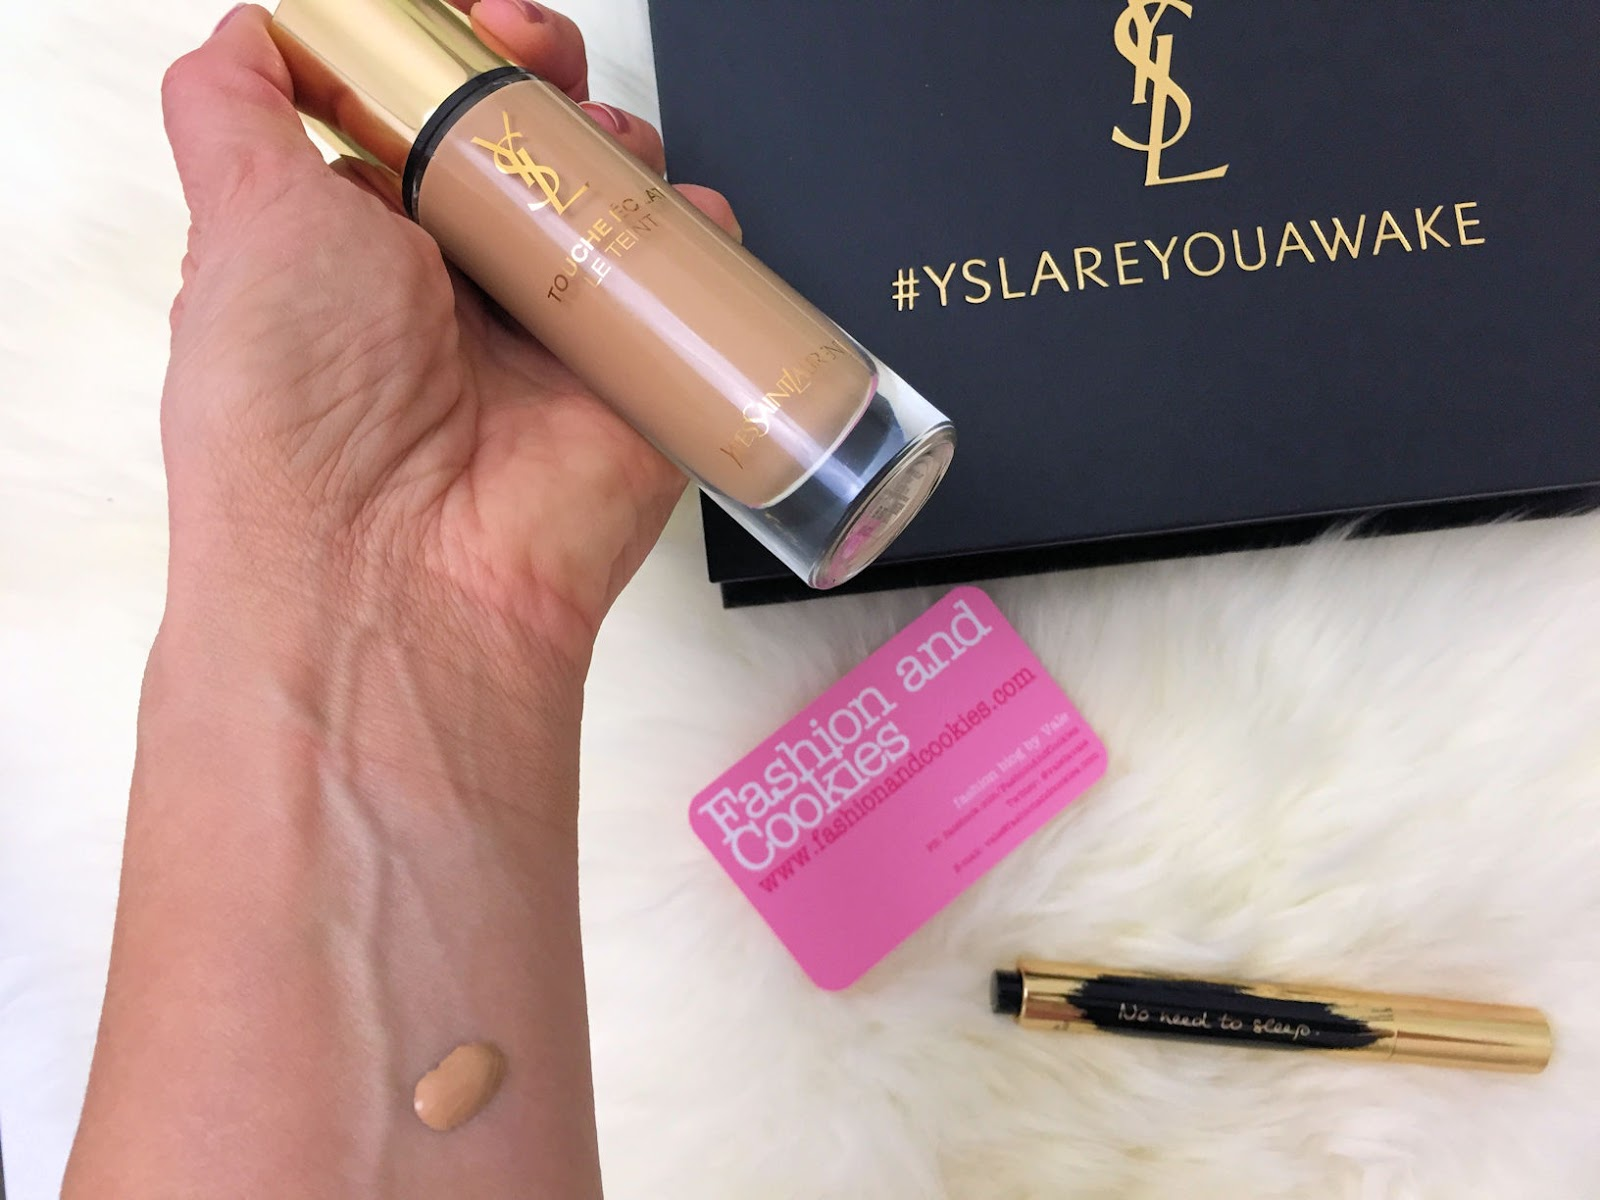 YSL Touche Éclat Le Teint foundation swatch on Fashion and Cookies beauty blog, beauty blogger